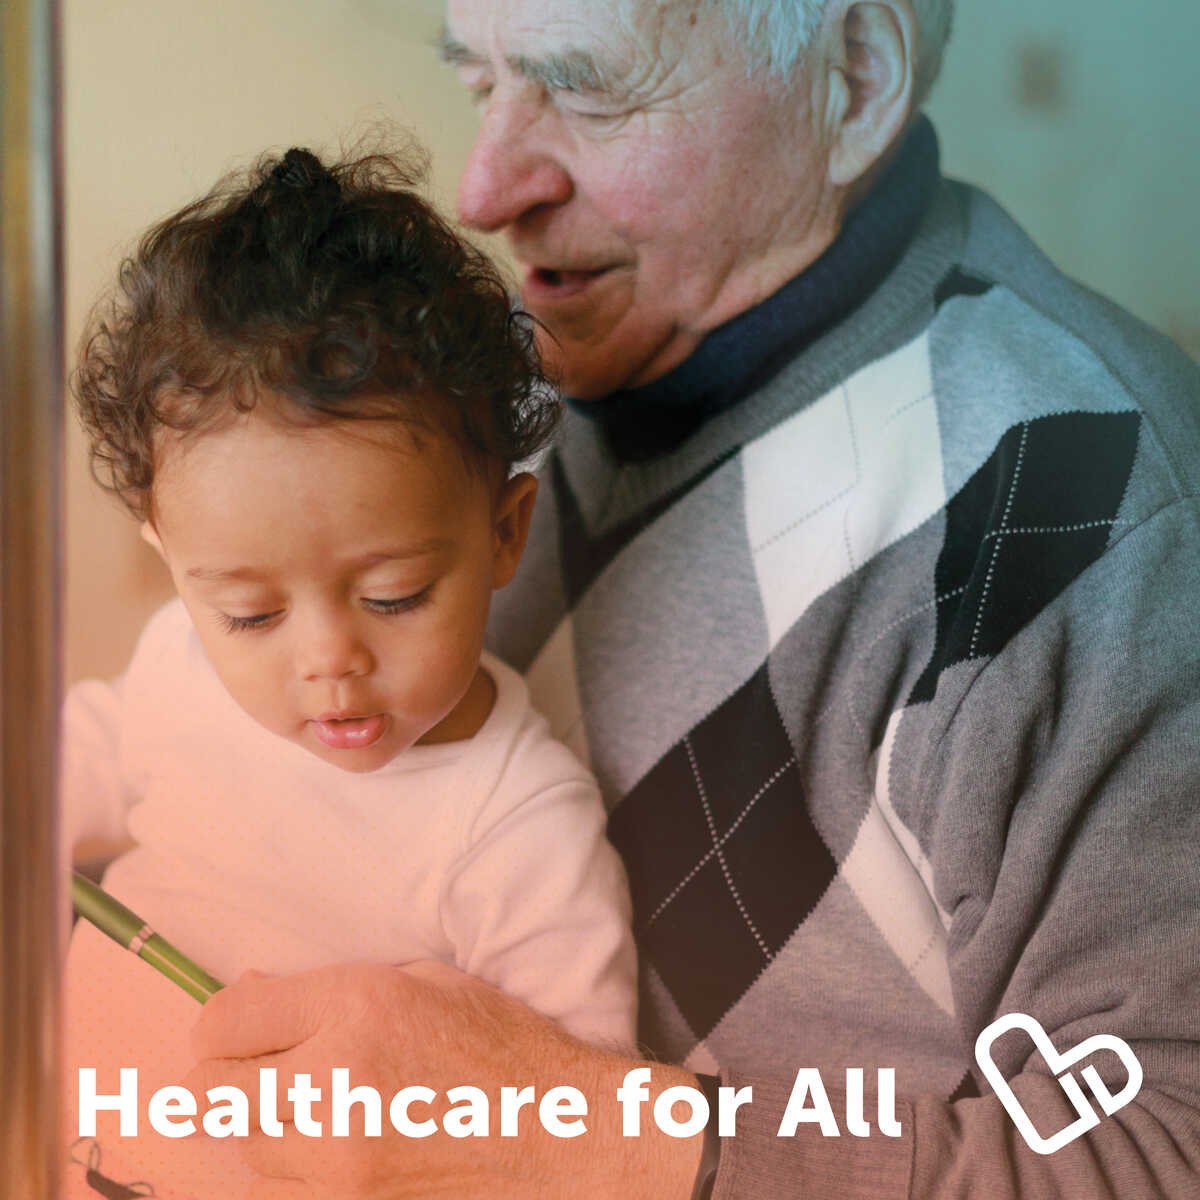 Healthcare for all - photo of grandparent and grandchild